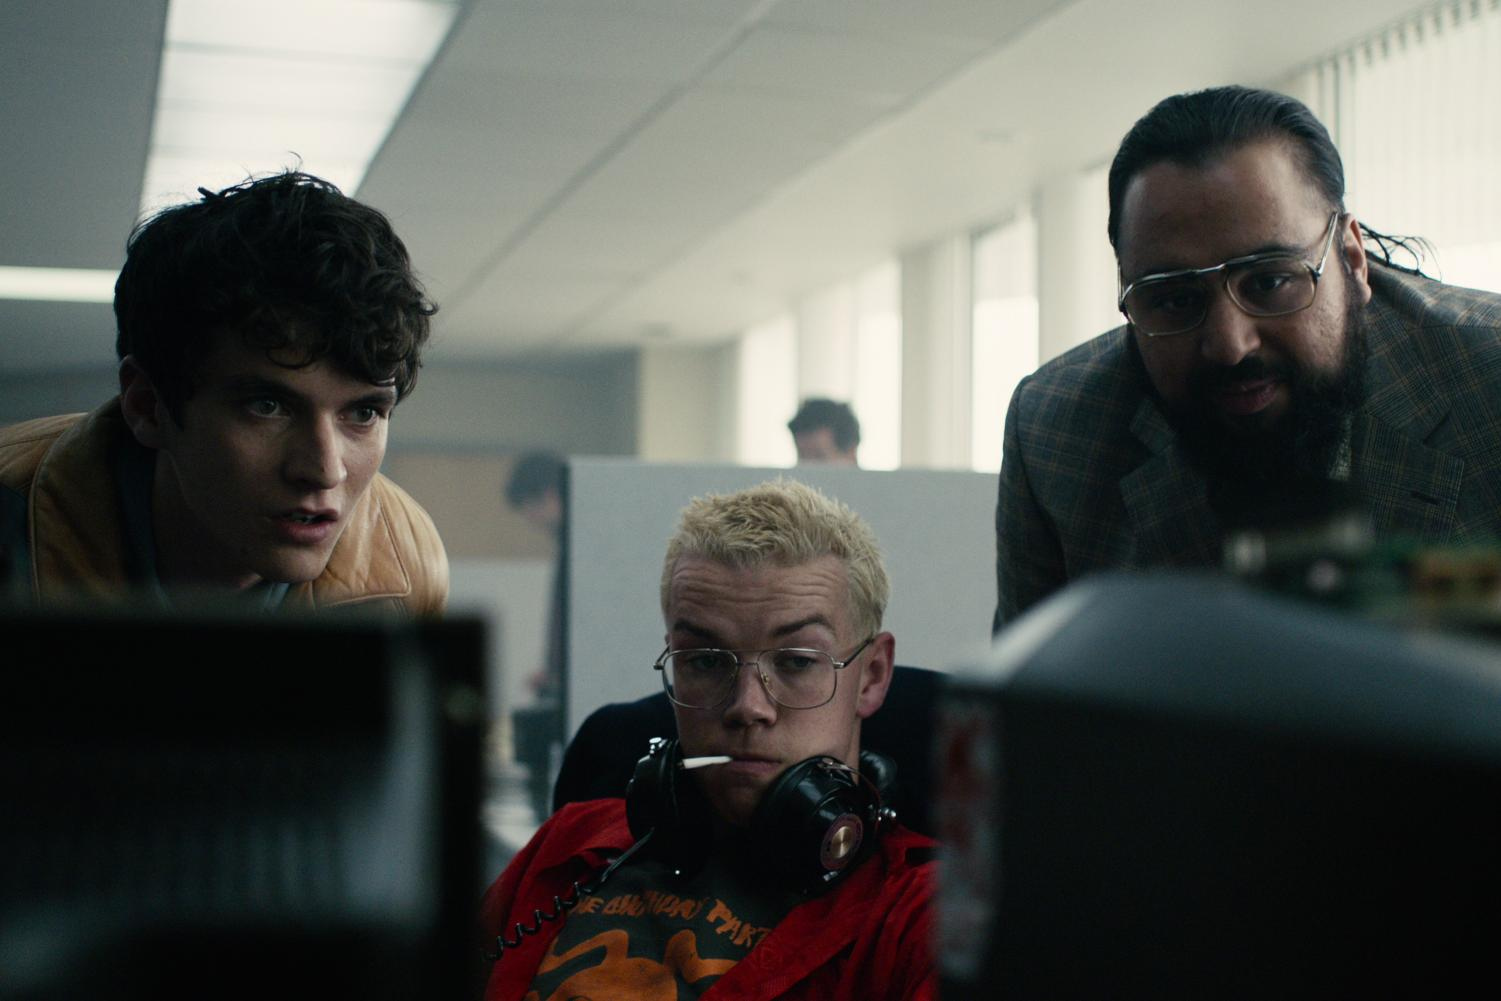 An action-packed, suspenseful movie. Bandersnatch came out on Dec. 28, 2018. It has 312 total minutes of content.